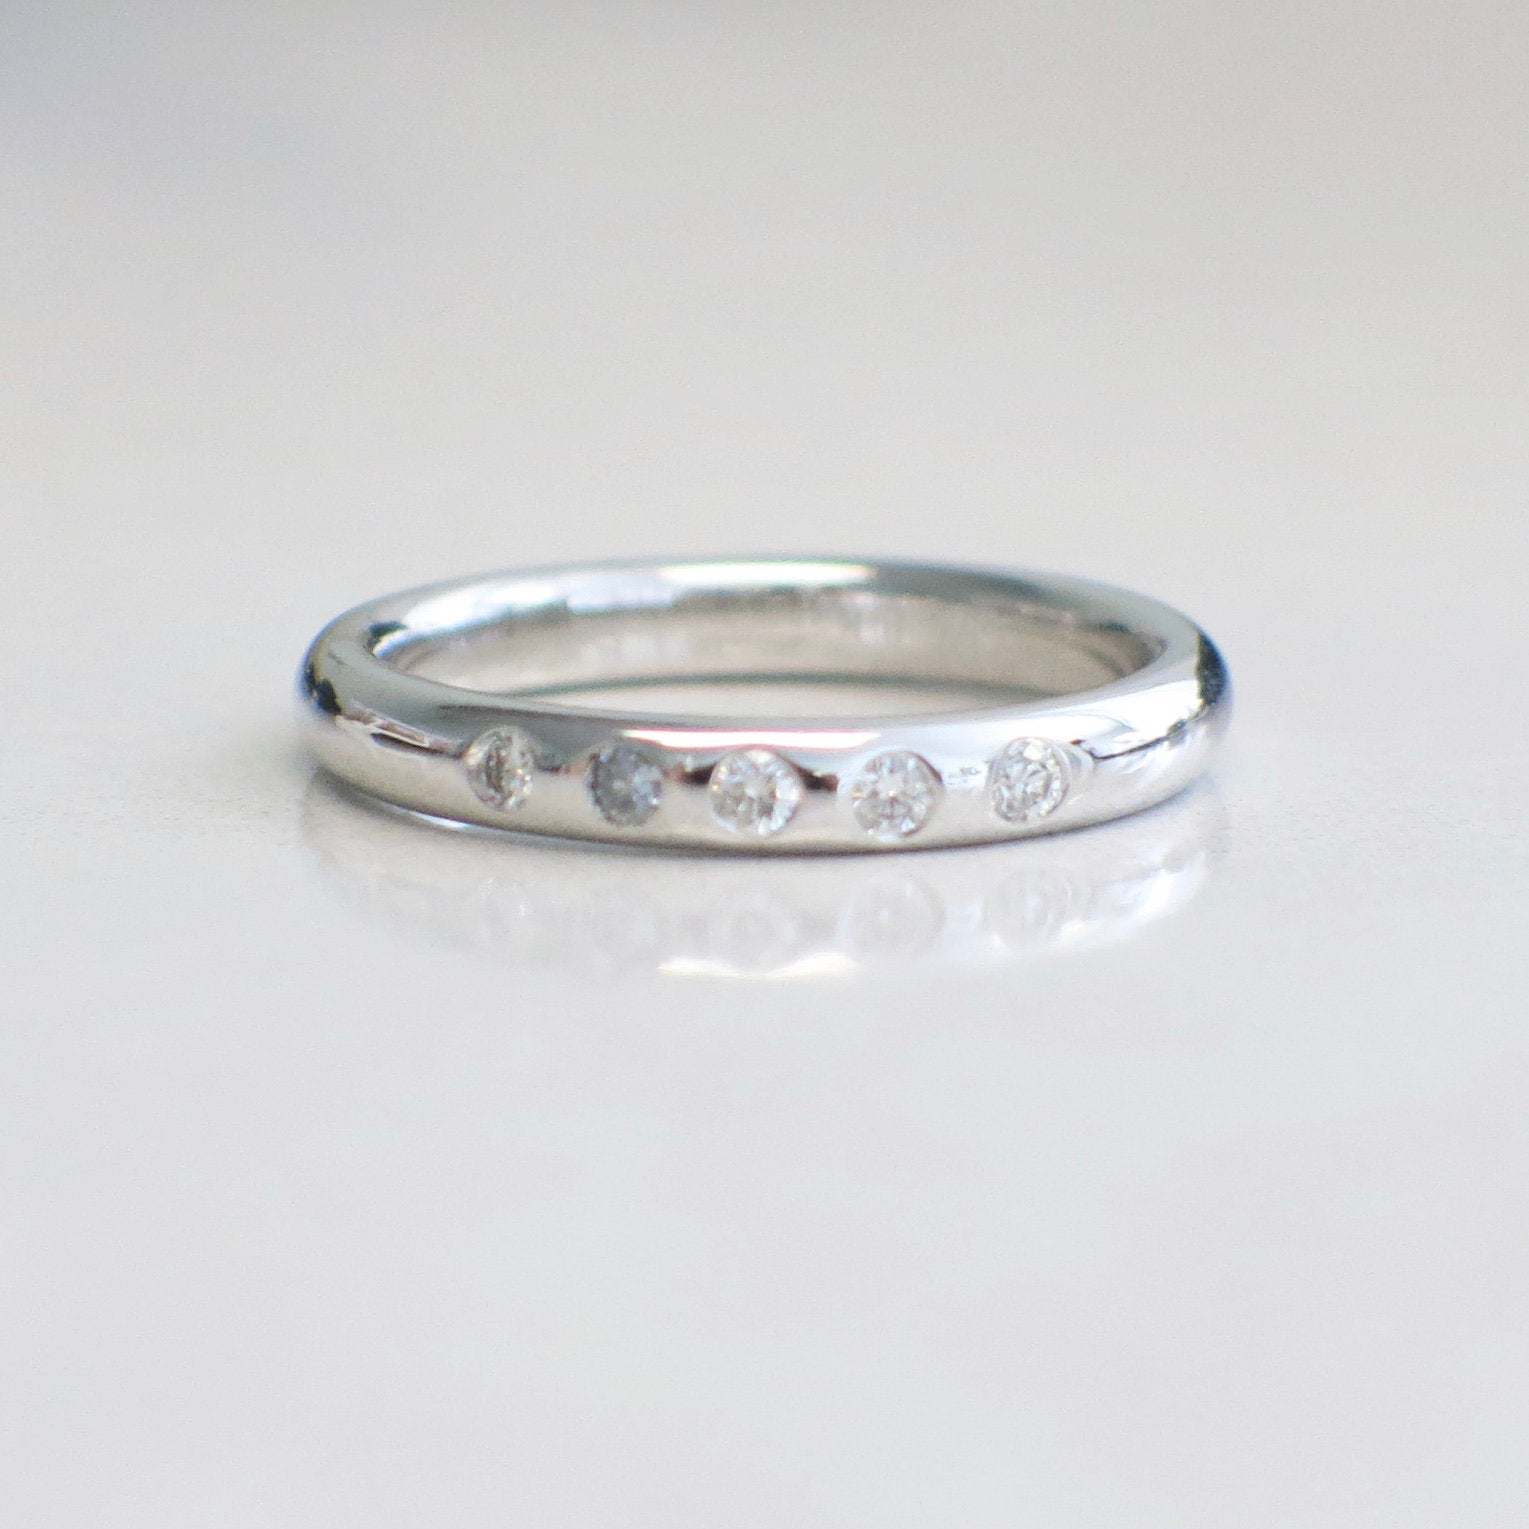 "14k White Gold Five Stone Flush Diamond Ring Wedding Band With Regard To Most Up To Date Diamond Accent Five Stone ""s"" Anniversary Bands In White Gold (View 9 of 25)"